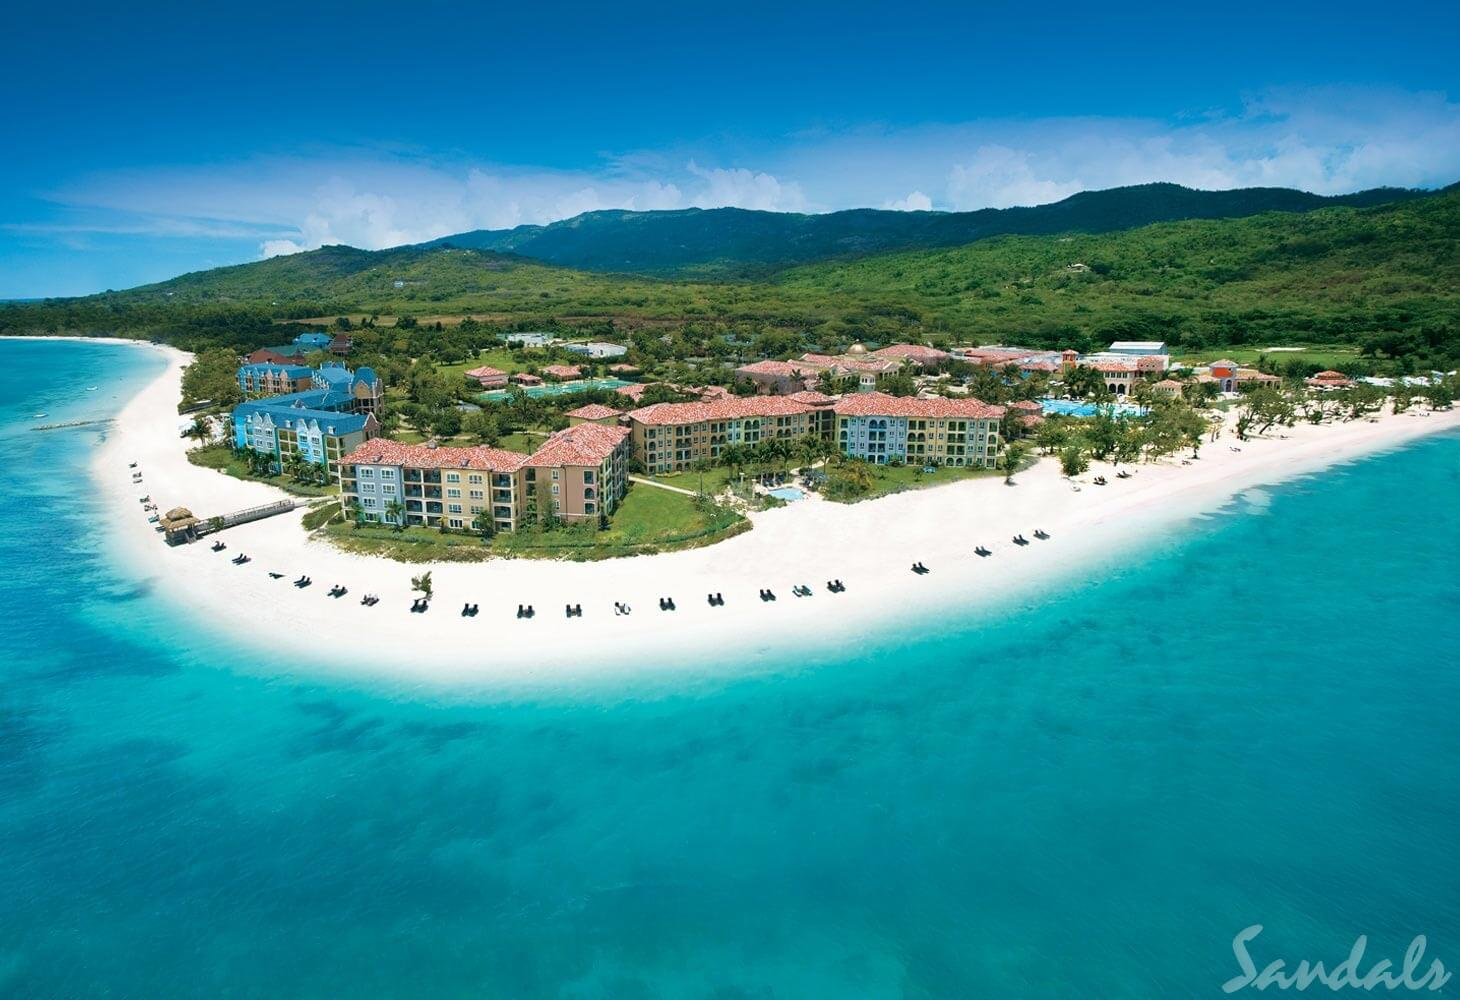 Sandals South Coast Aerial View